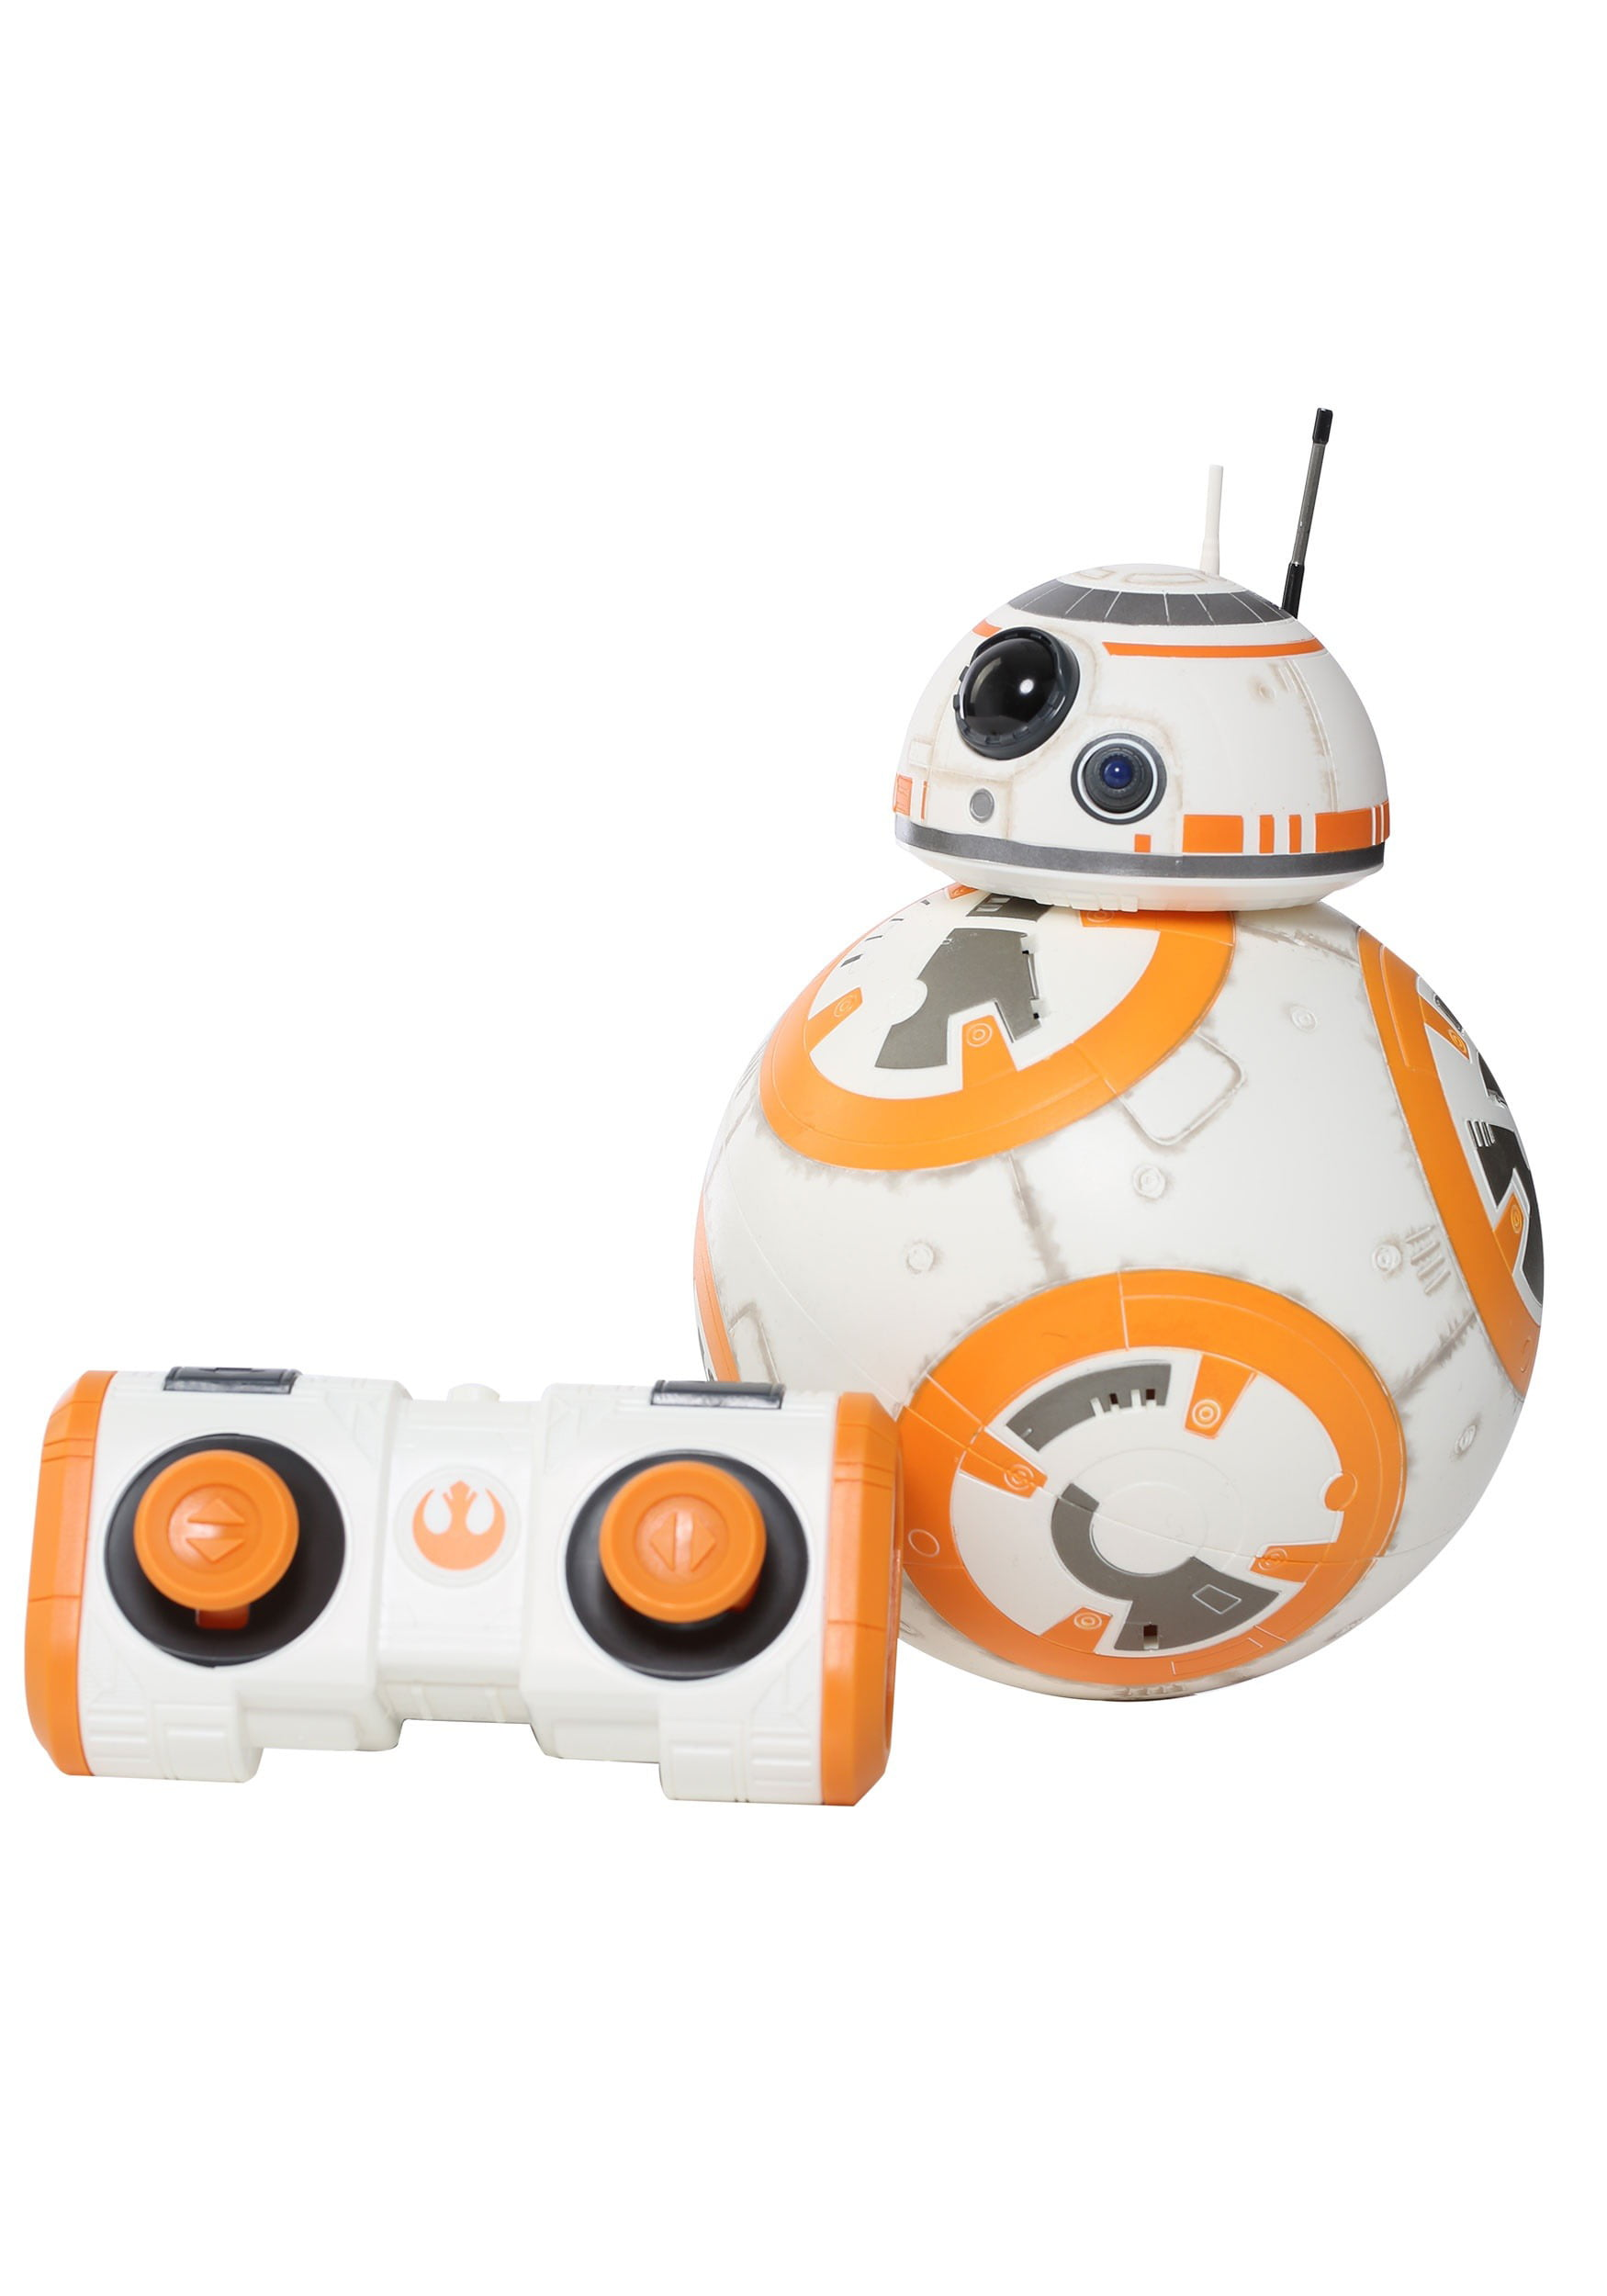 Star Wars: The Last Jedi Hyperdrive BB-8 by Hasbro